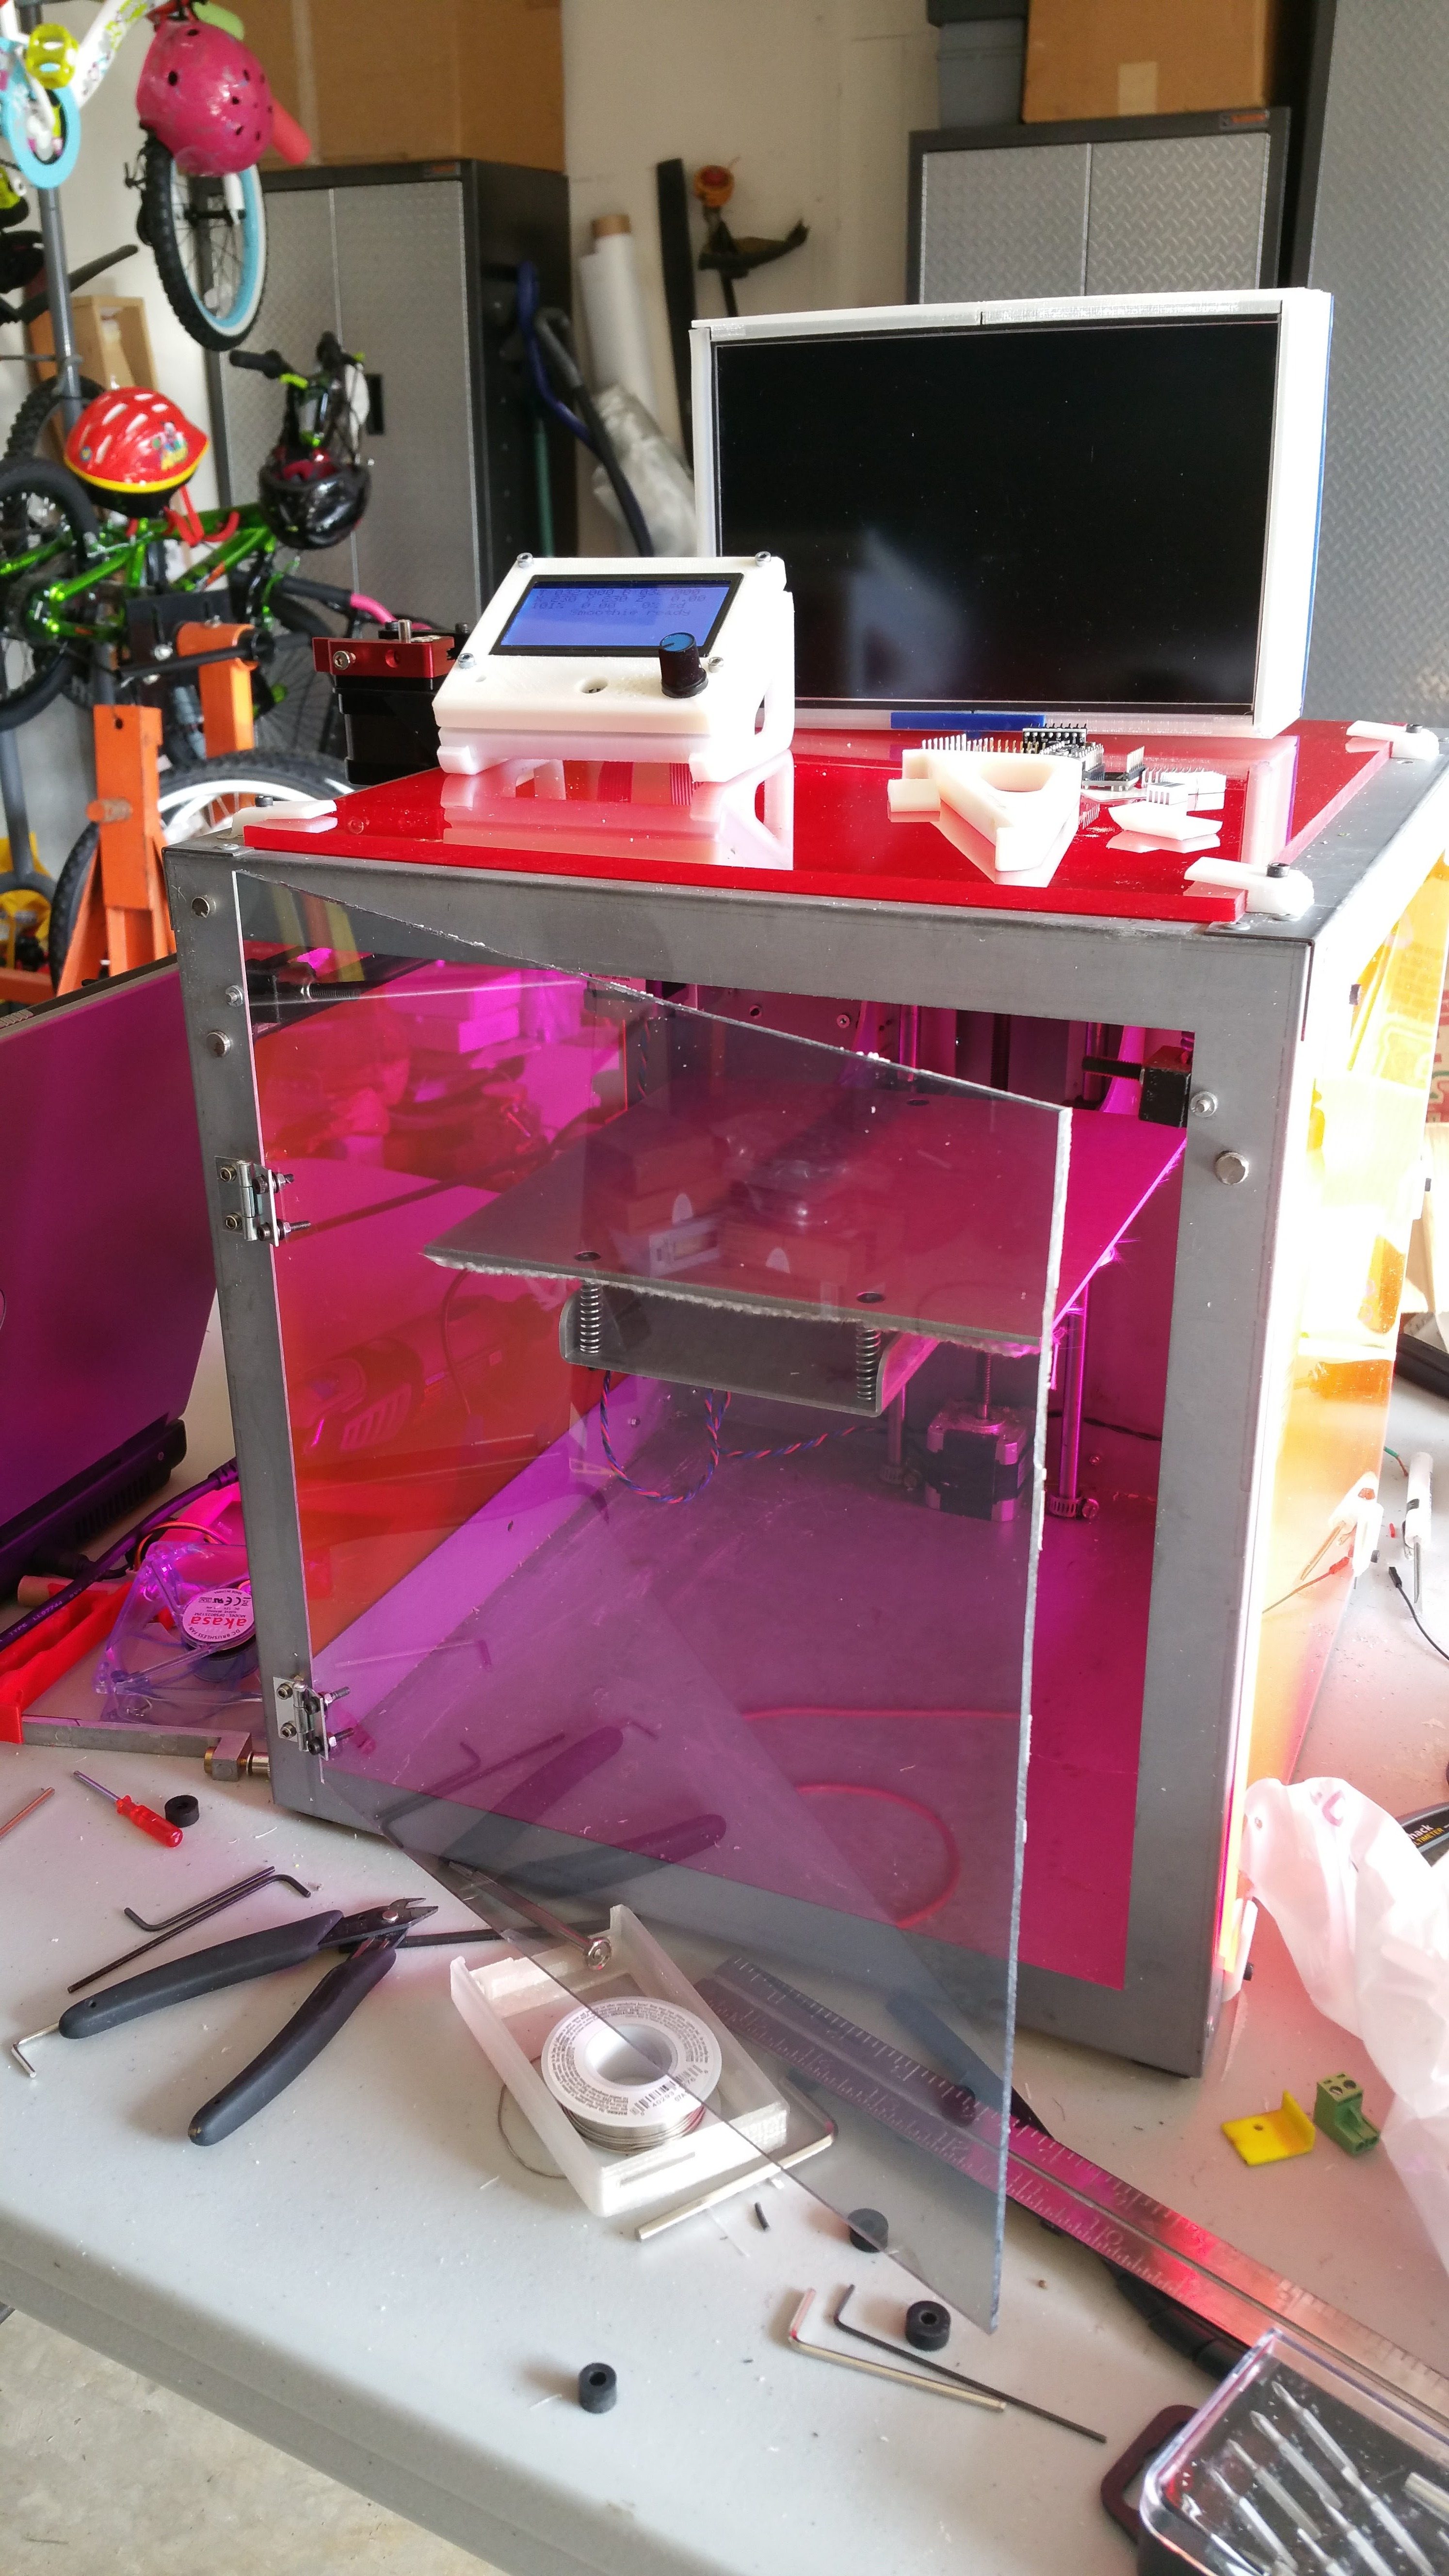 Picture of Resurrecting a Dead 3D Printer